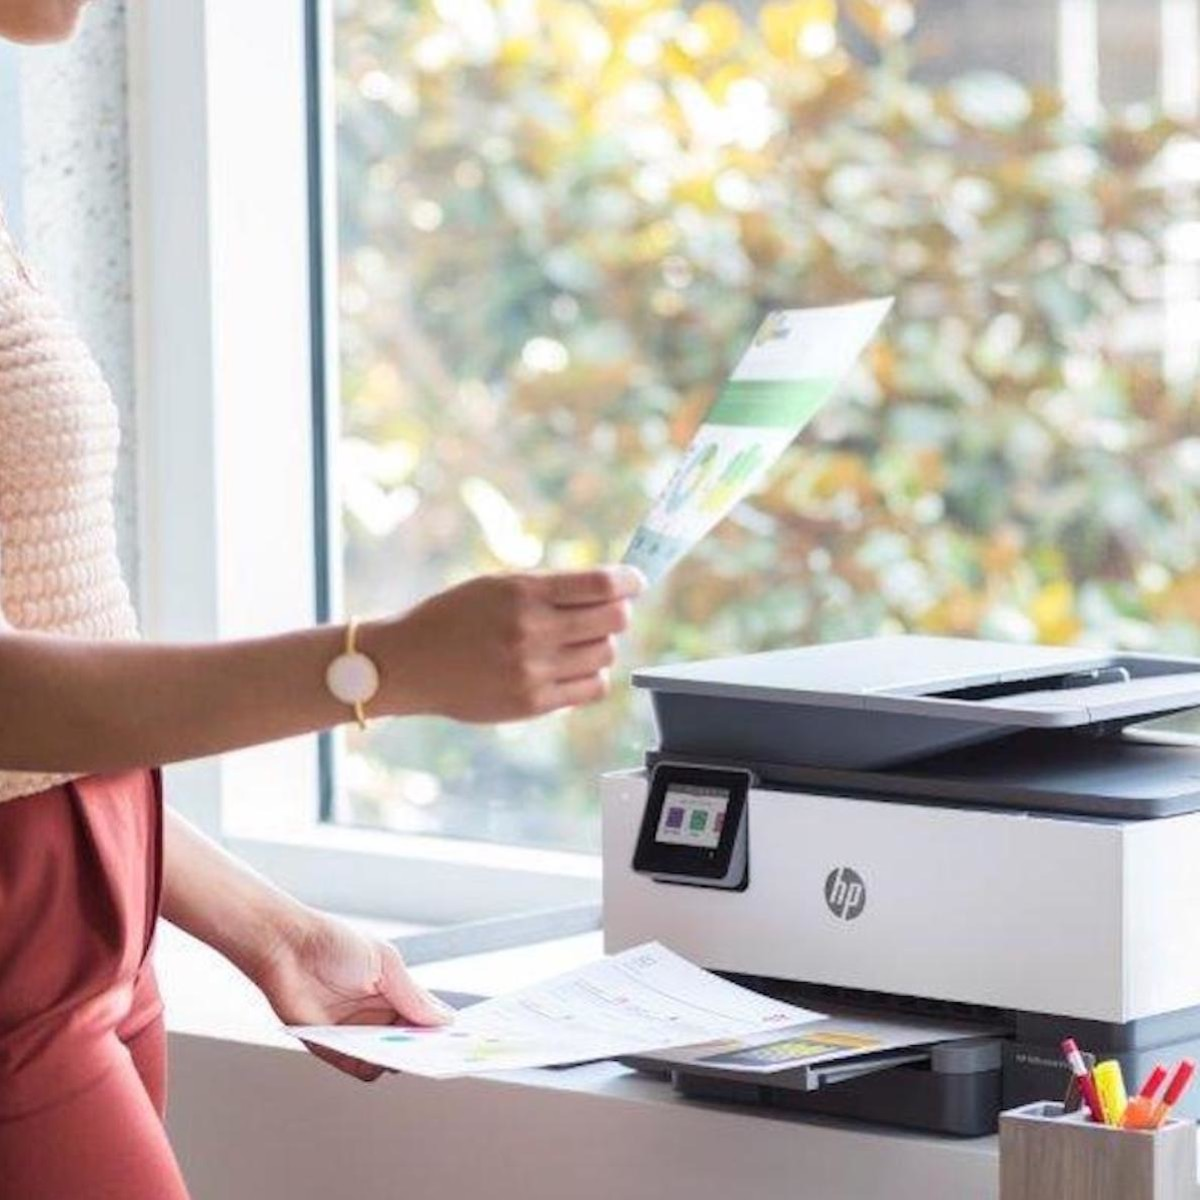 16 Amazing Tech Gadgets You Need For Your Home Office